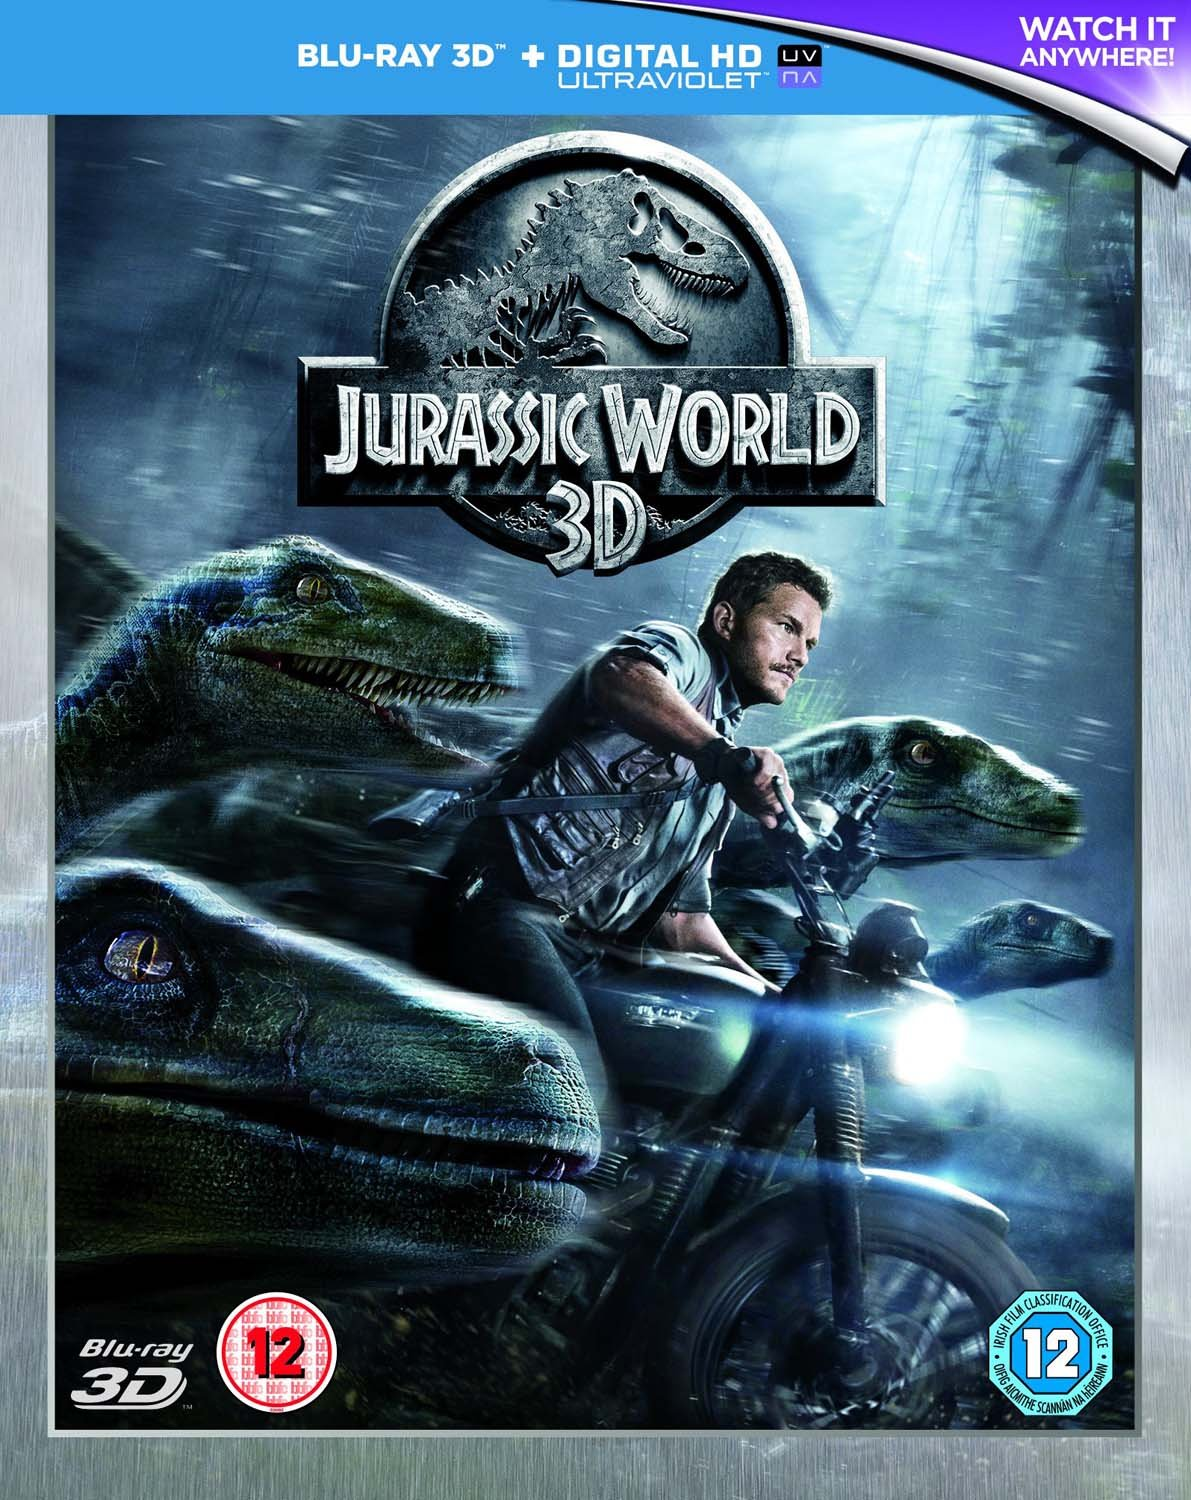 jurassic world full hd movie download hindi dubbed